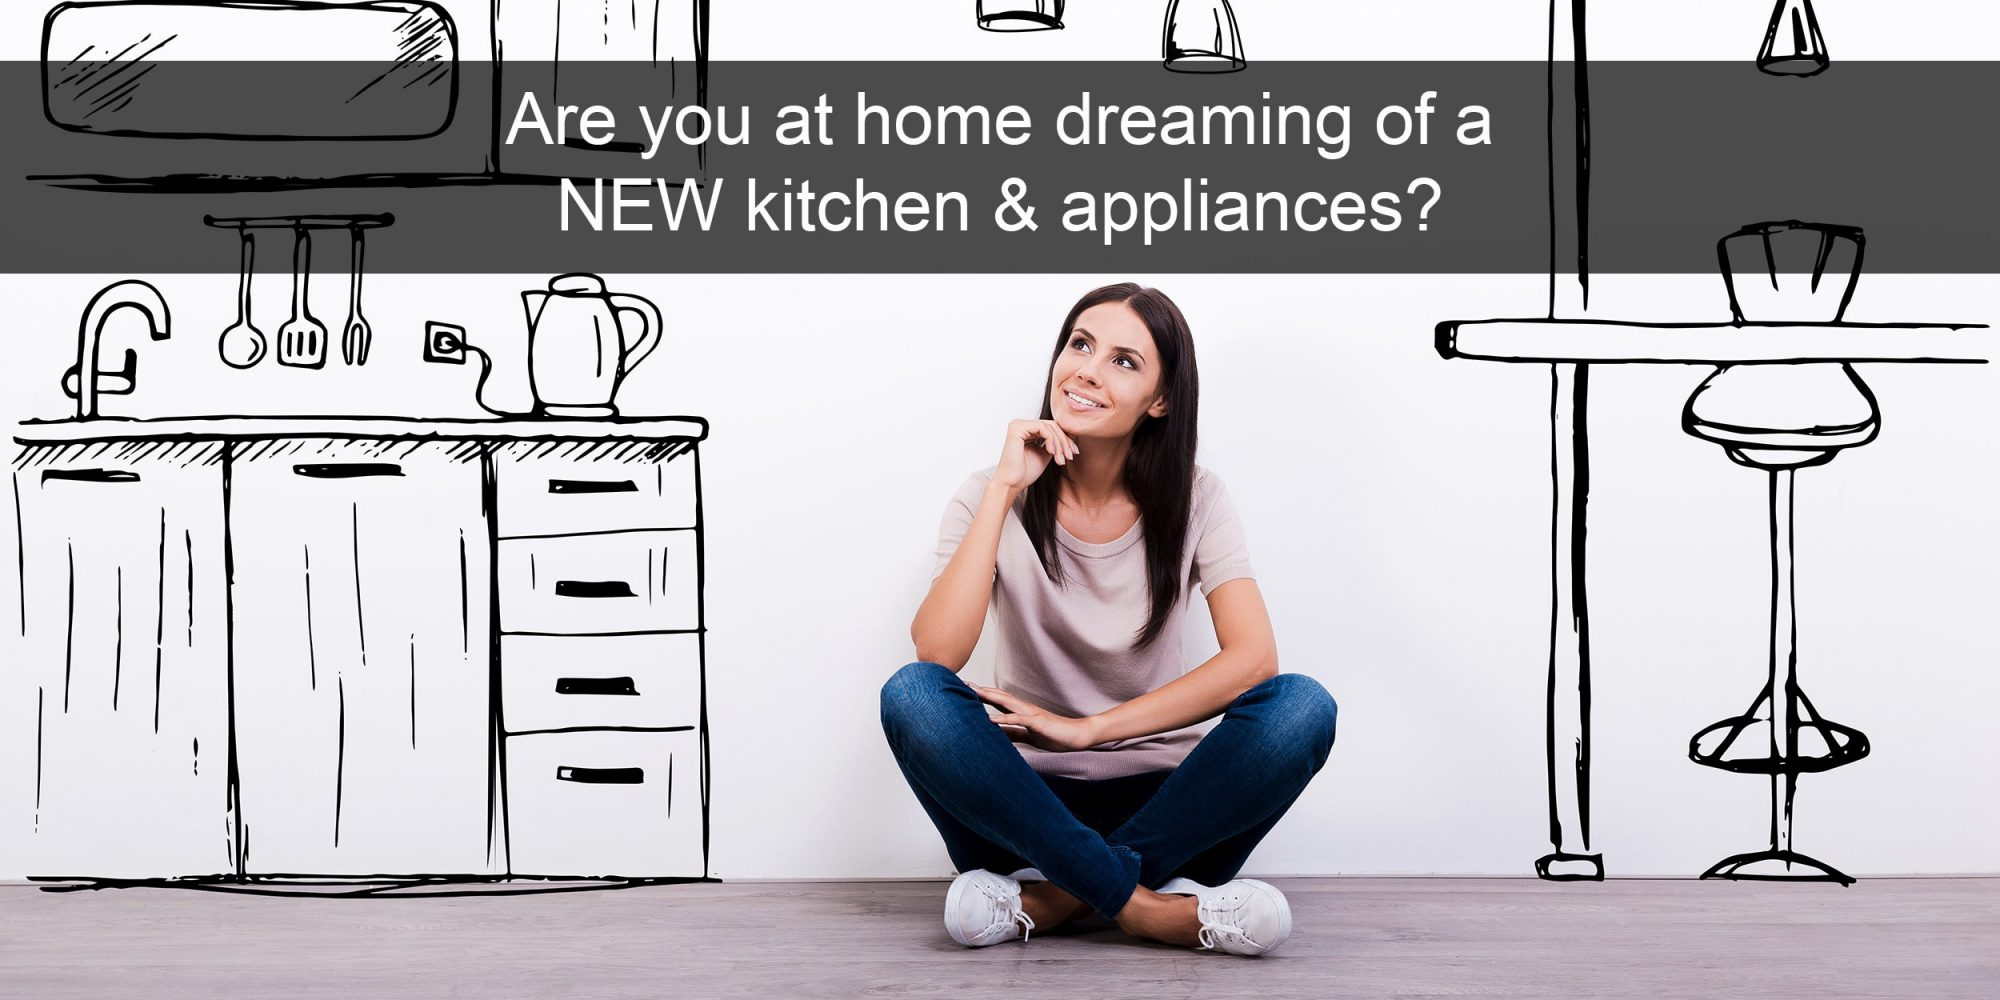 Dreaming of a new kitchen & appliance?